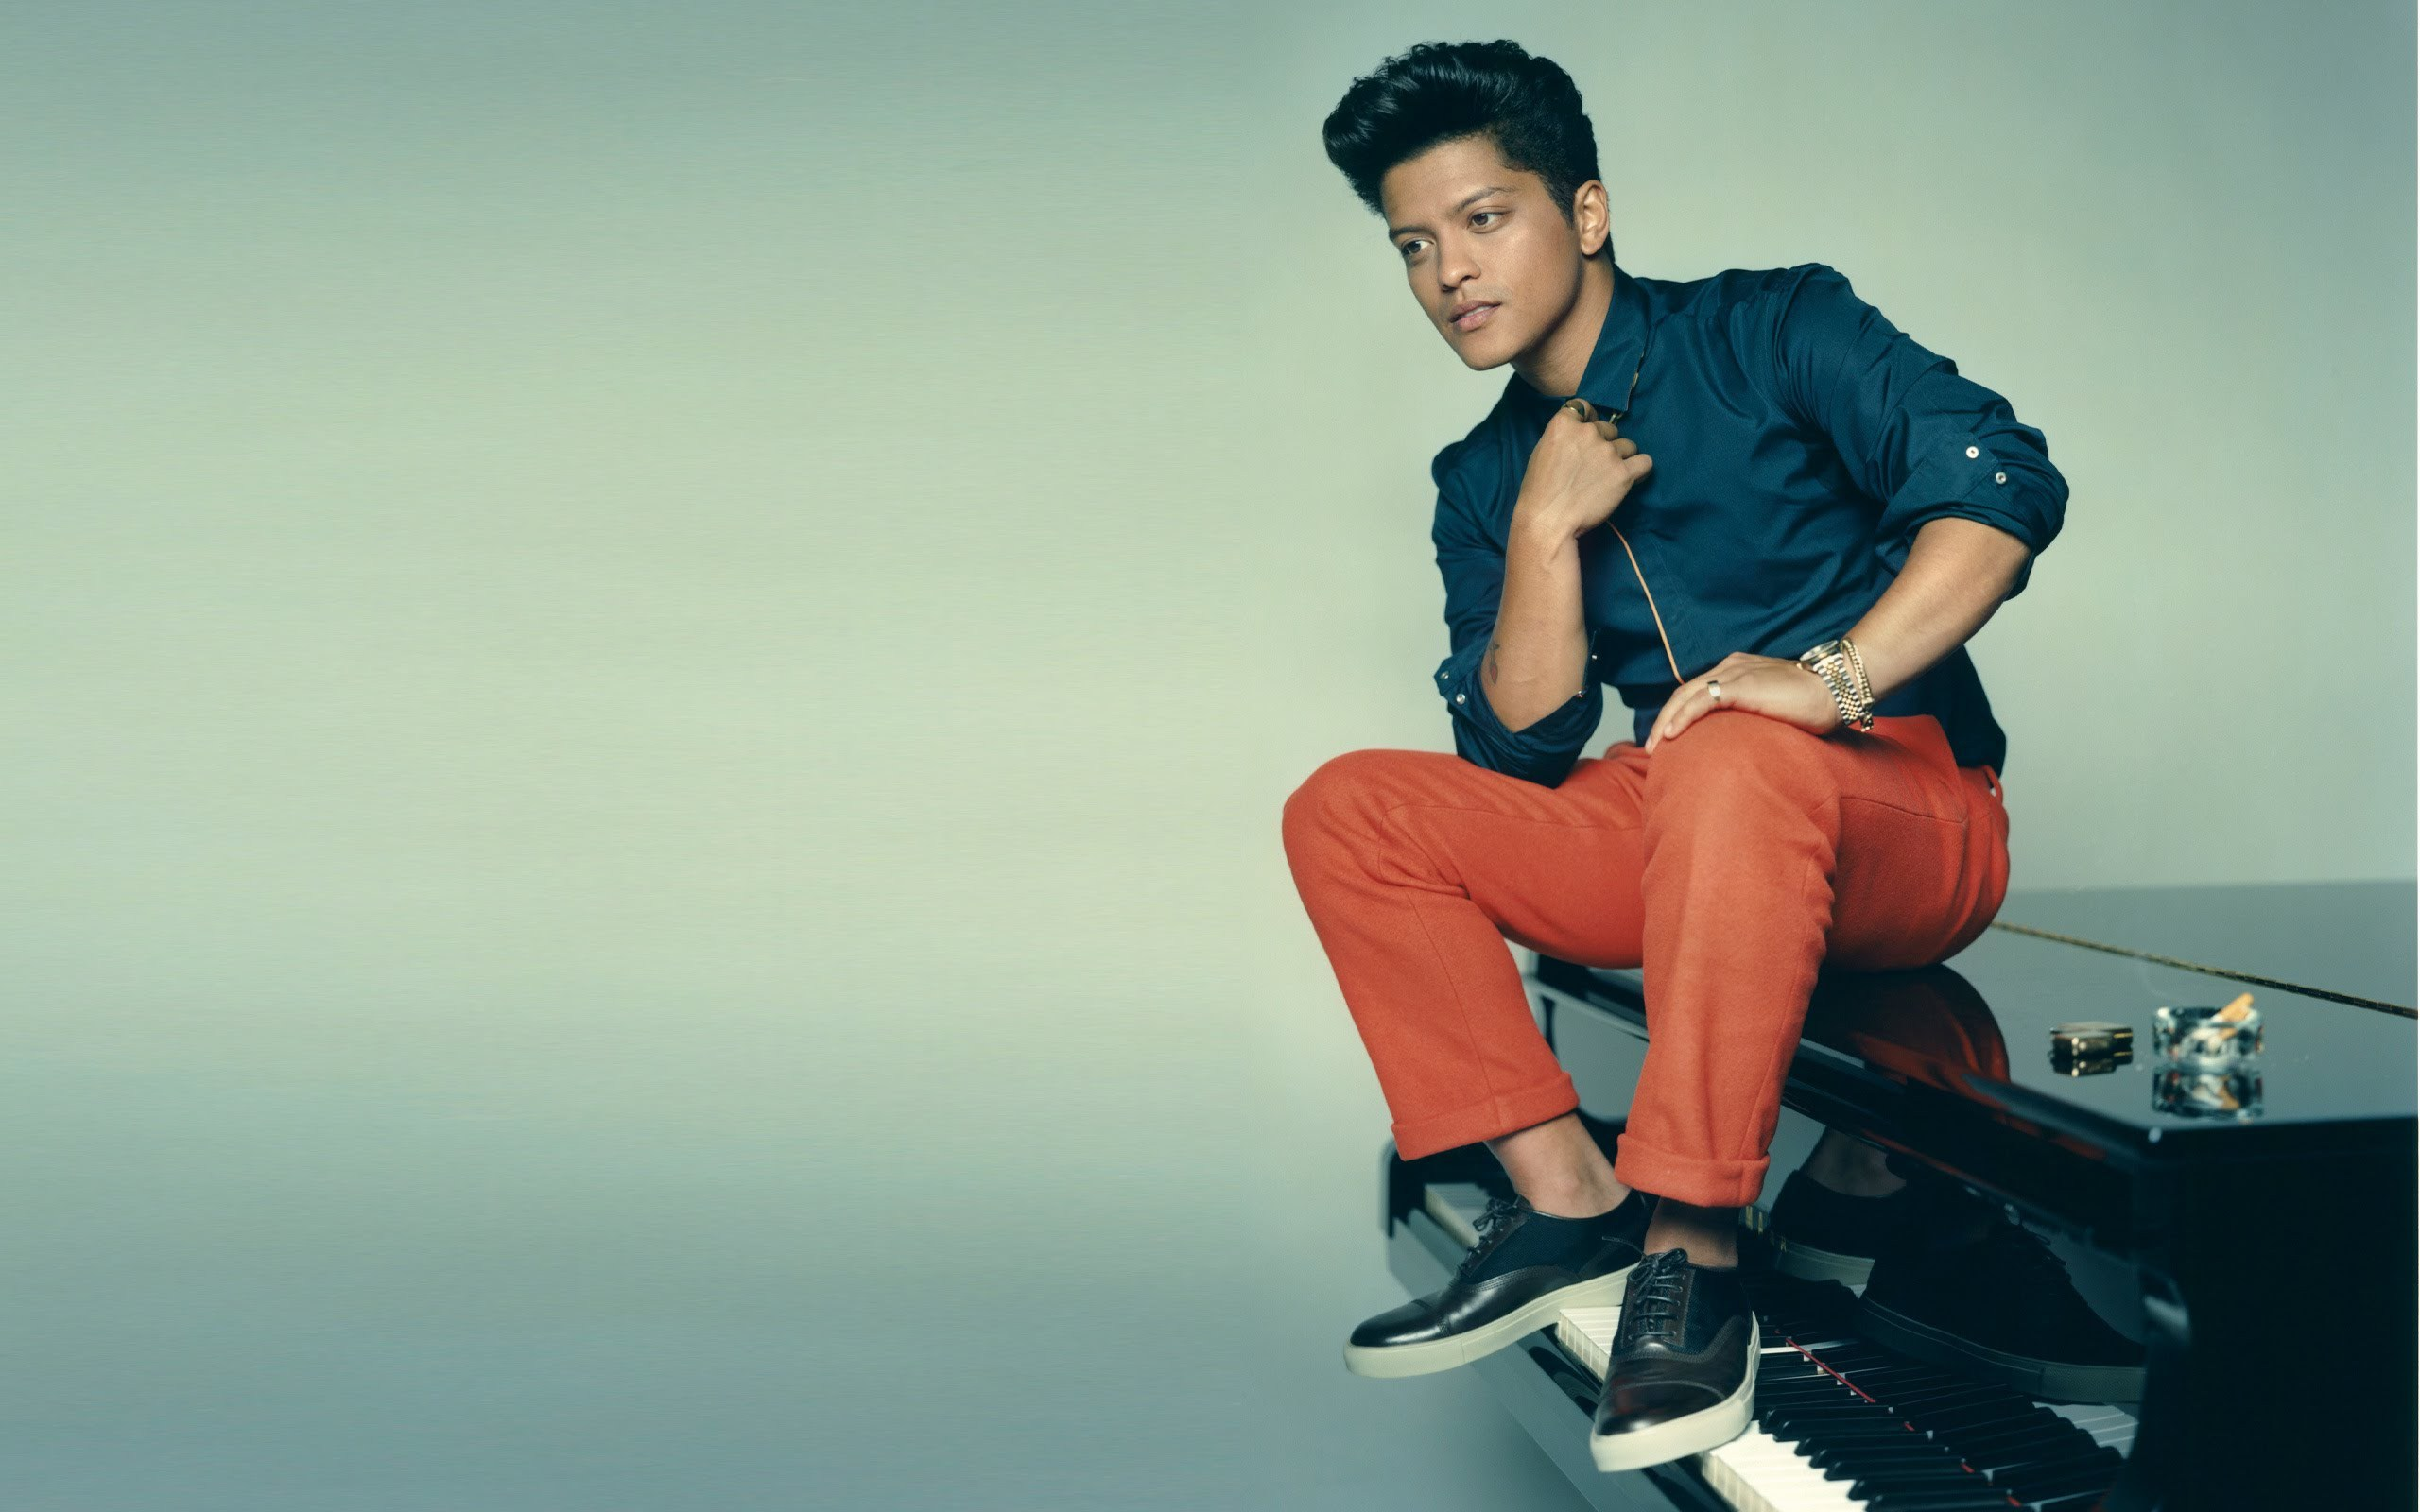 Bruno Mars Wallpapers HD Free Download